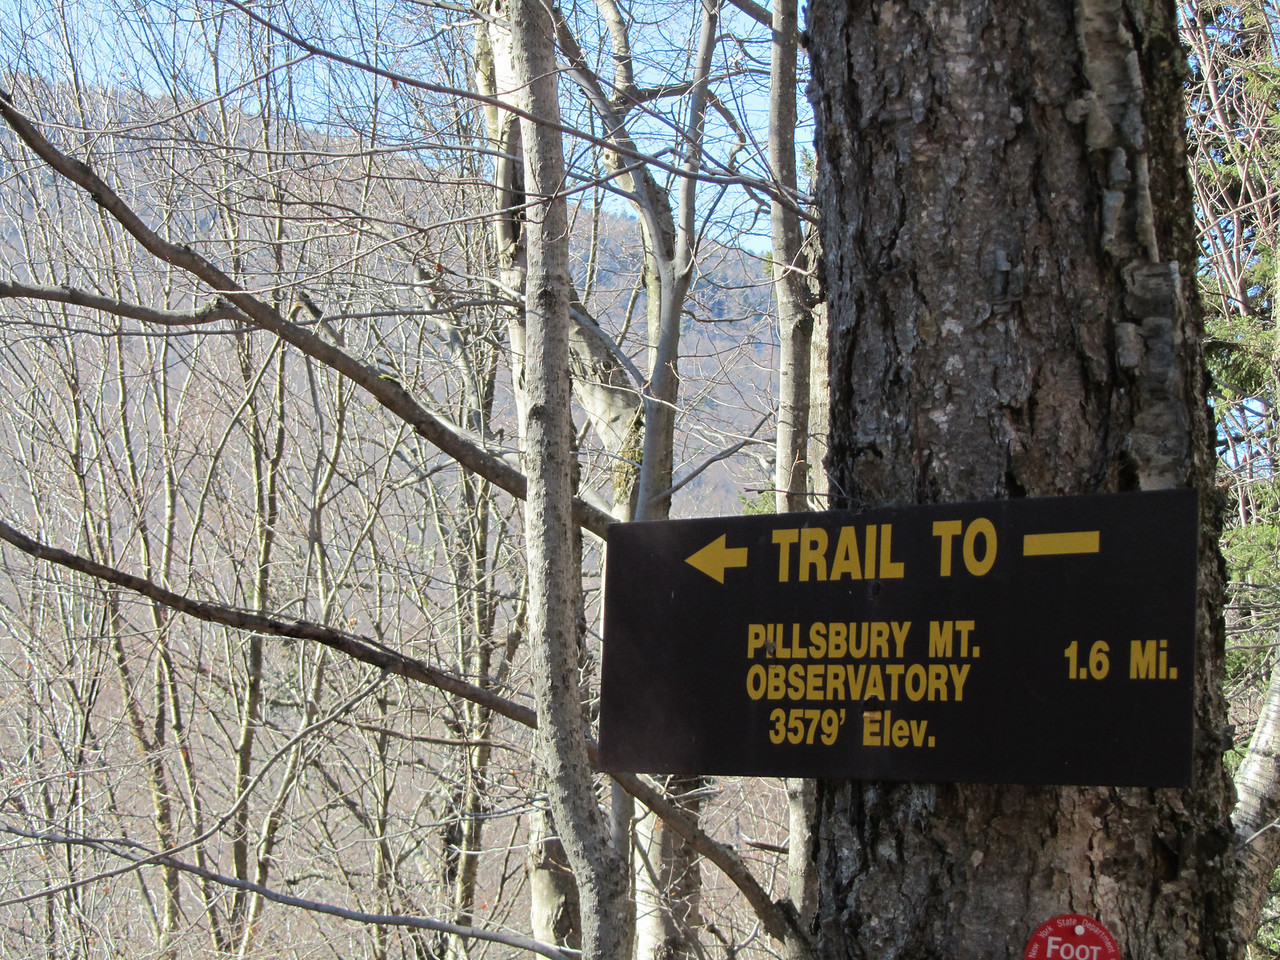 The trailhead. Warm. Dry. Sunny. Should be a snap.